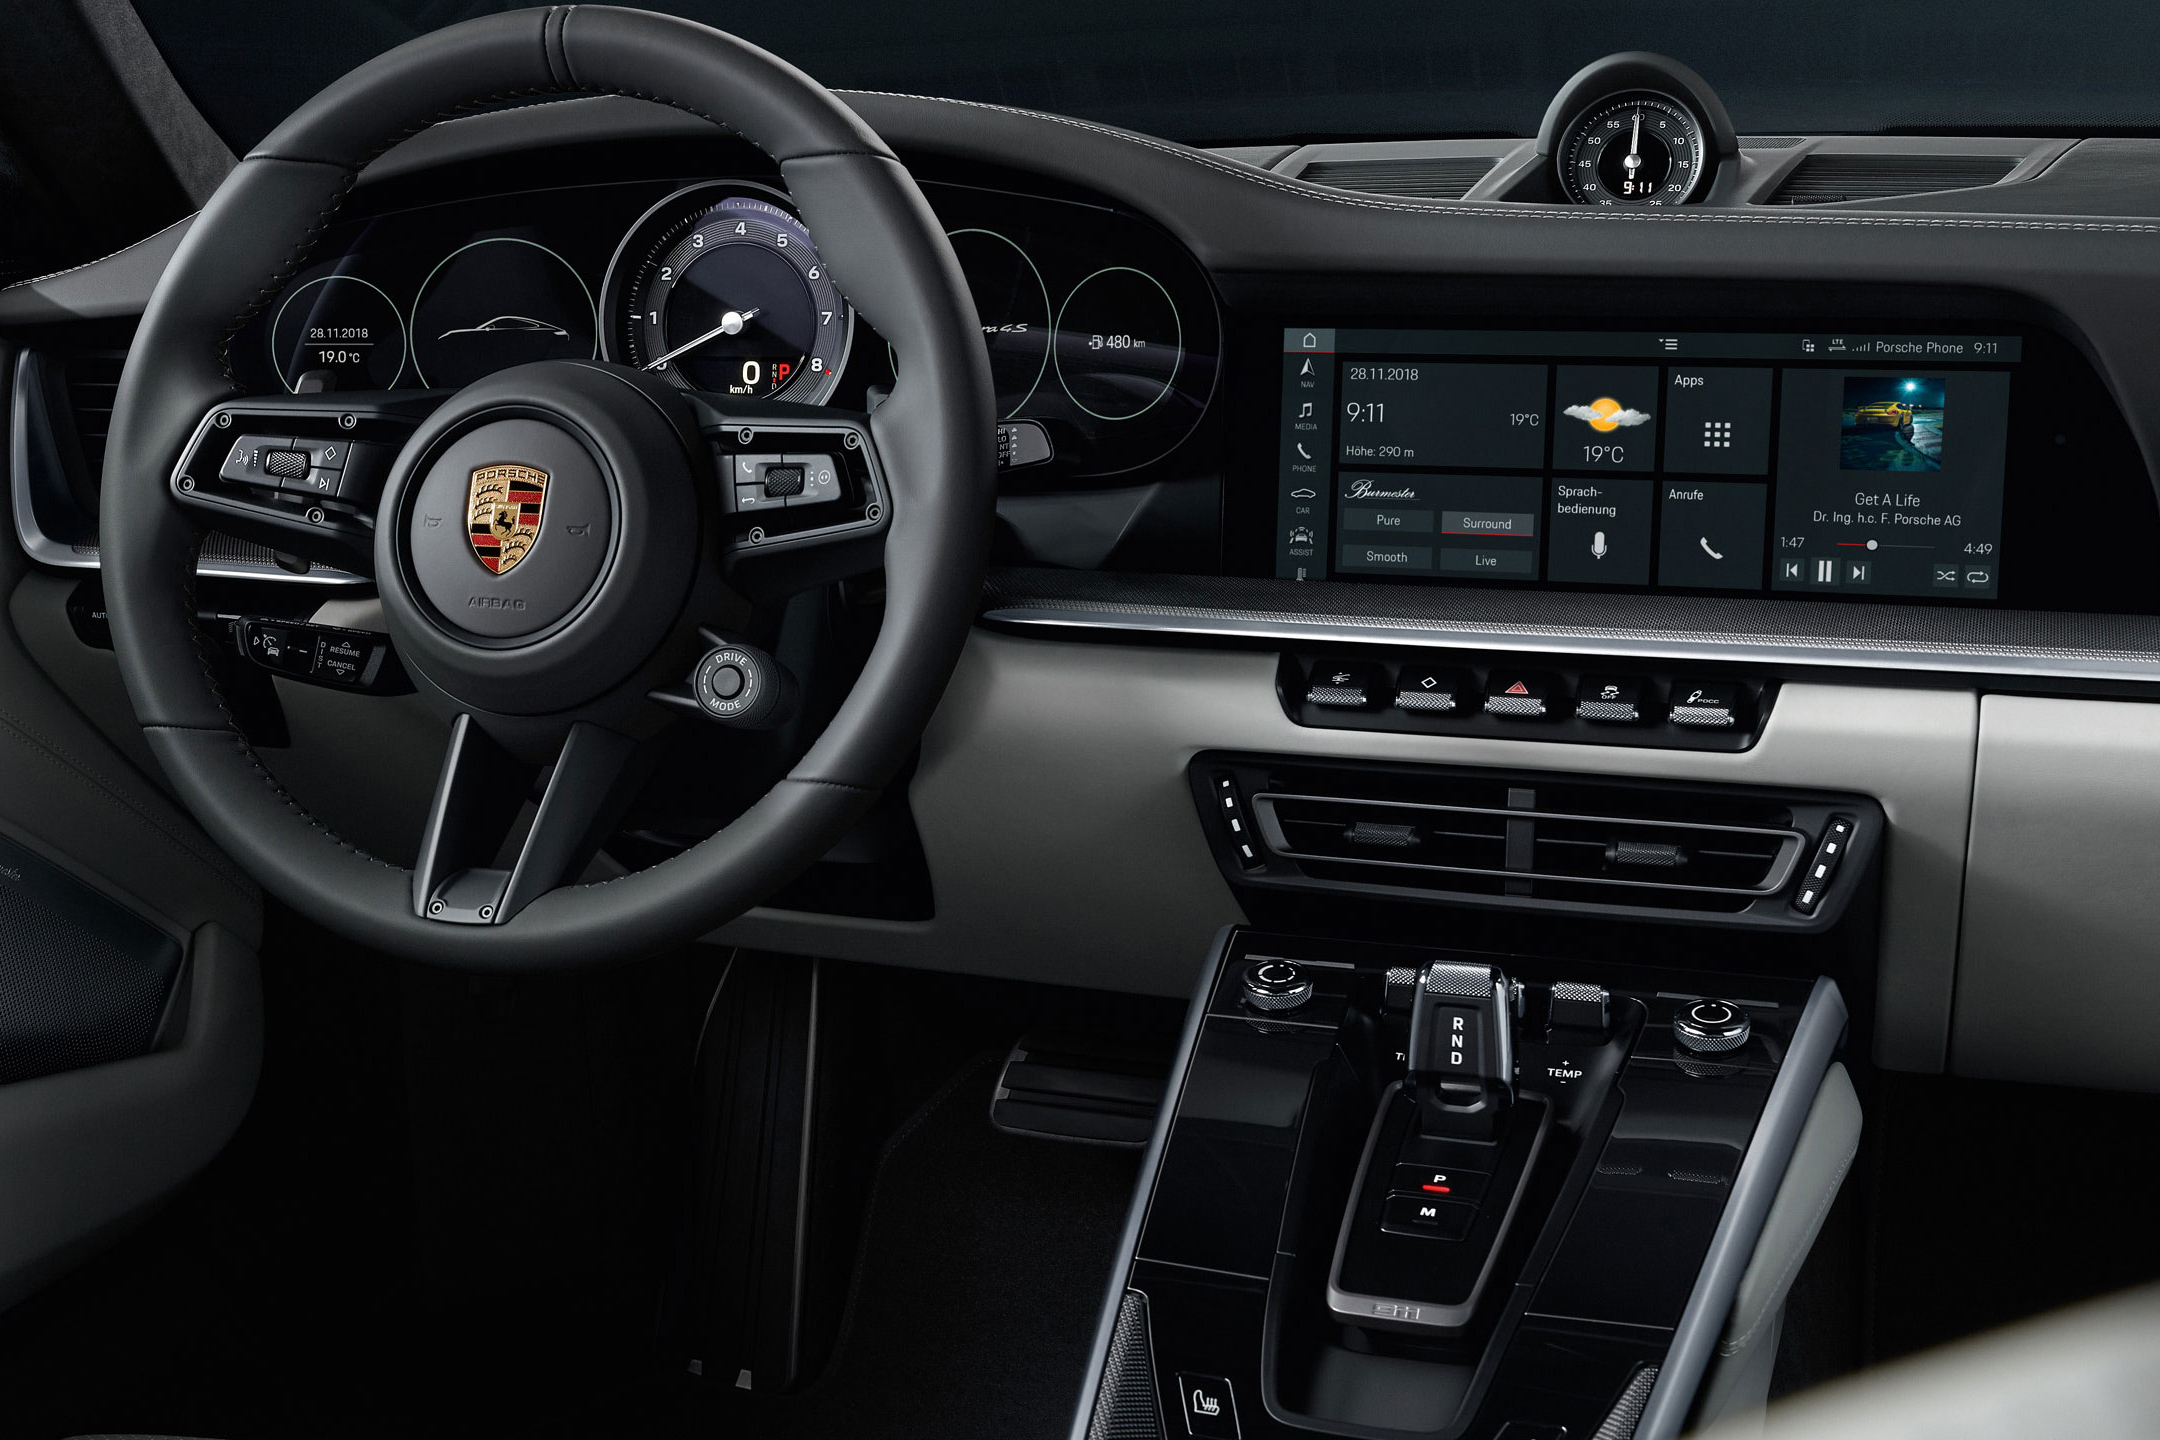 Porsche 911 type 992 Carrera 4S - 2018 - central dashboard